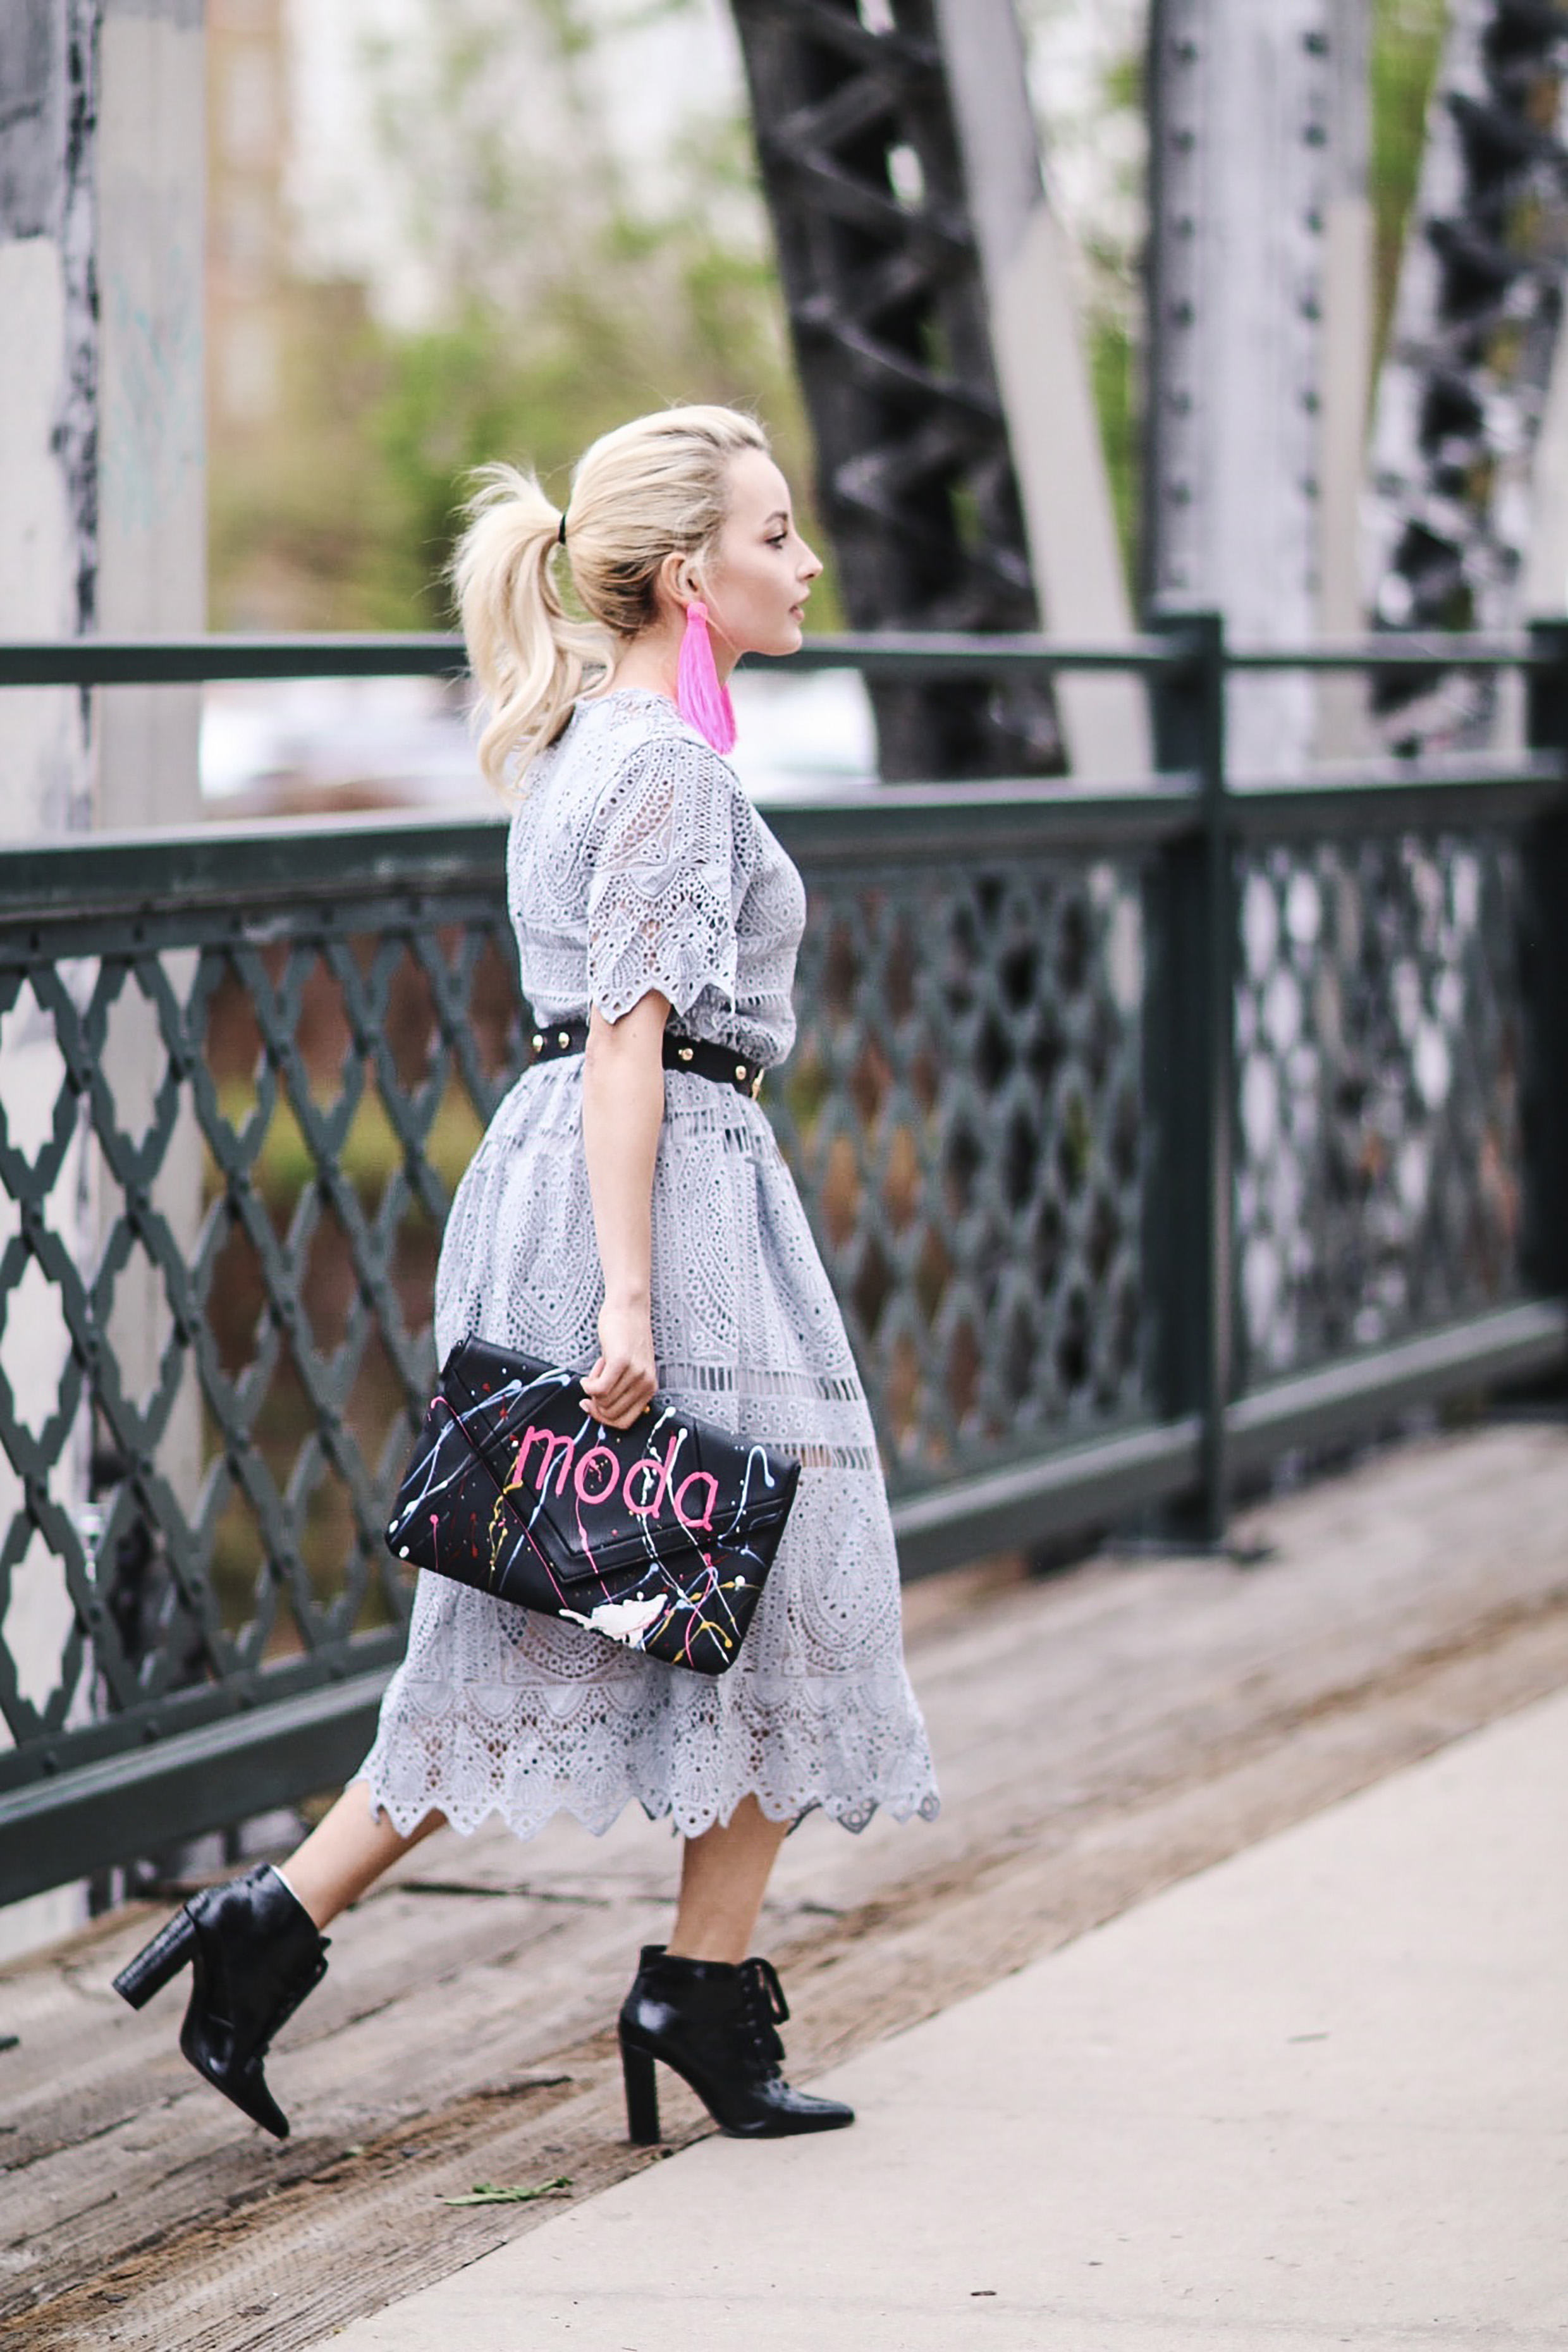 Alena Gidenko of modaprints.com styles a lace grey dress with booties and adds a pop of color with earrings and a clutch